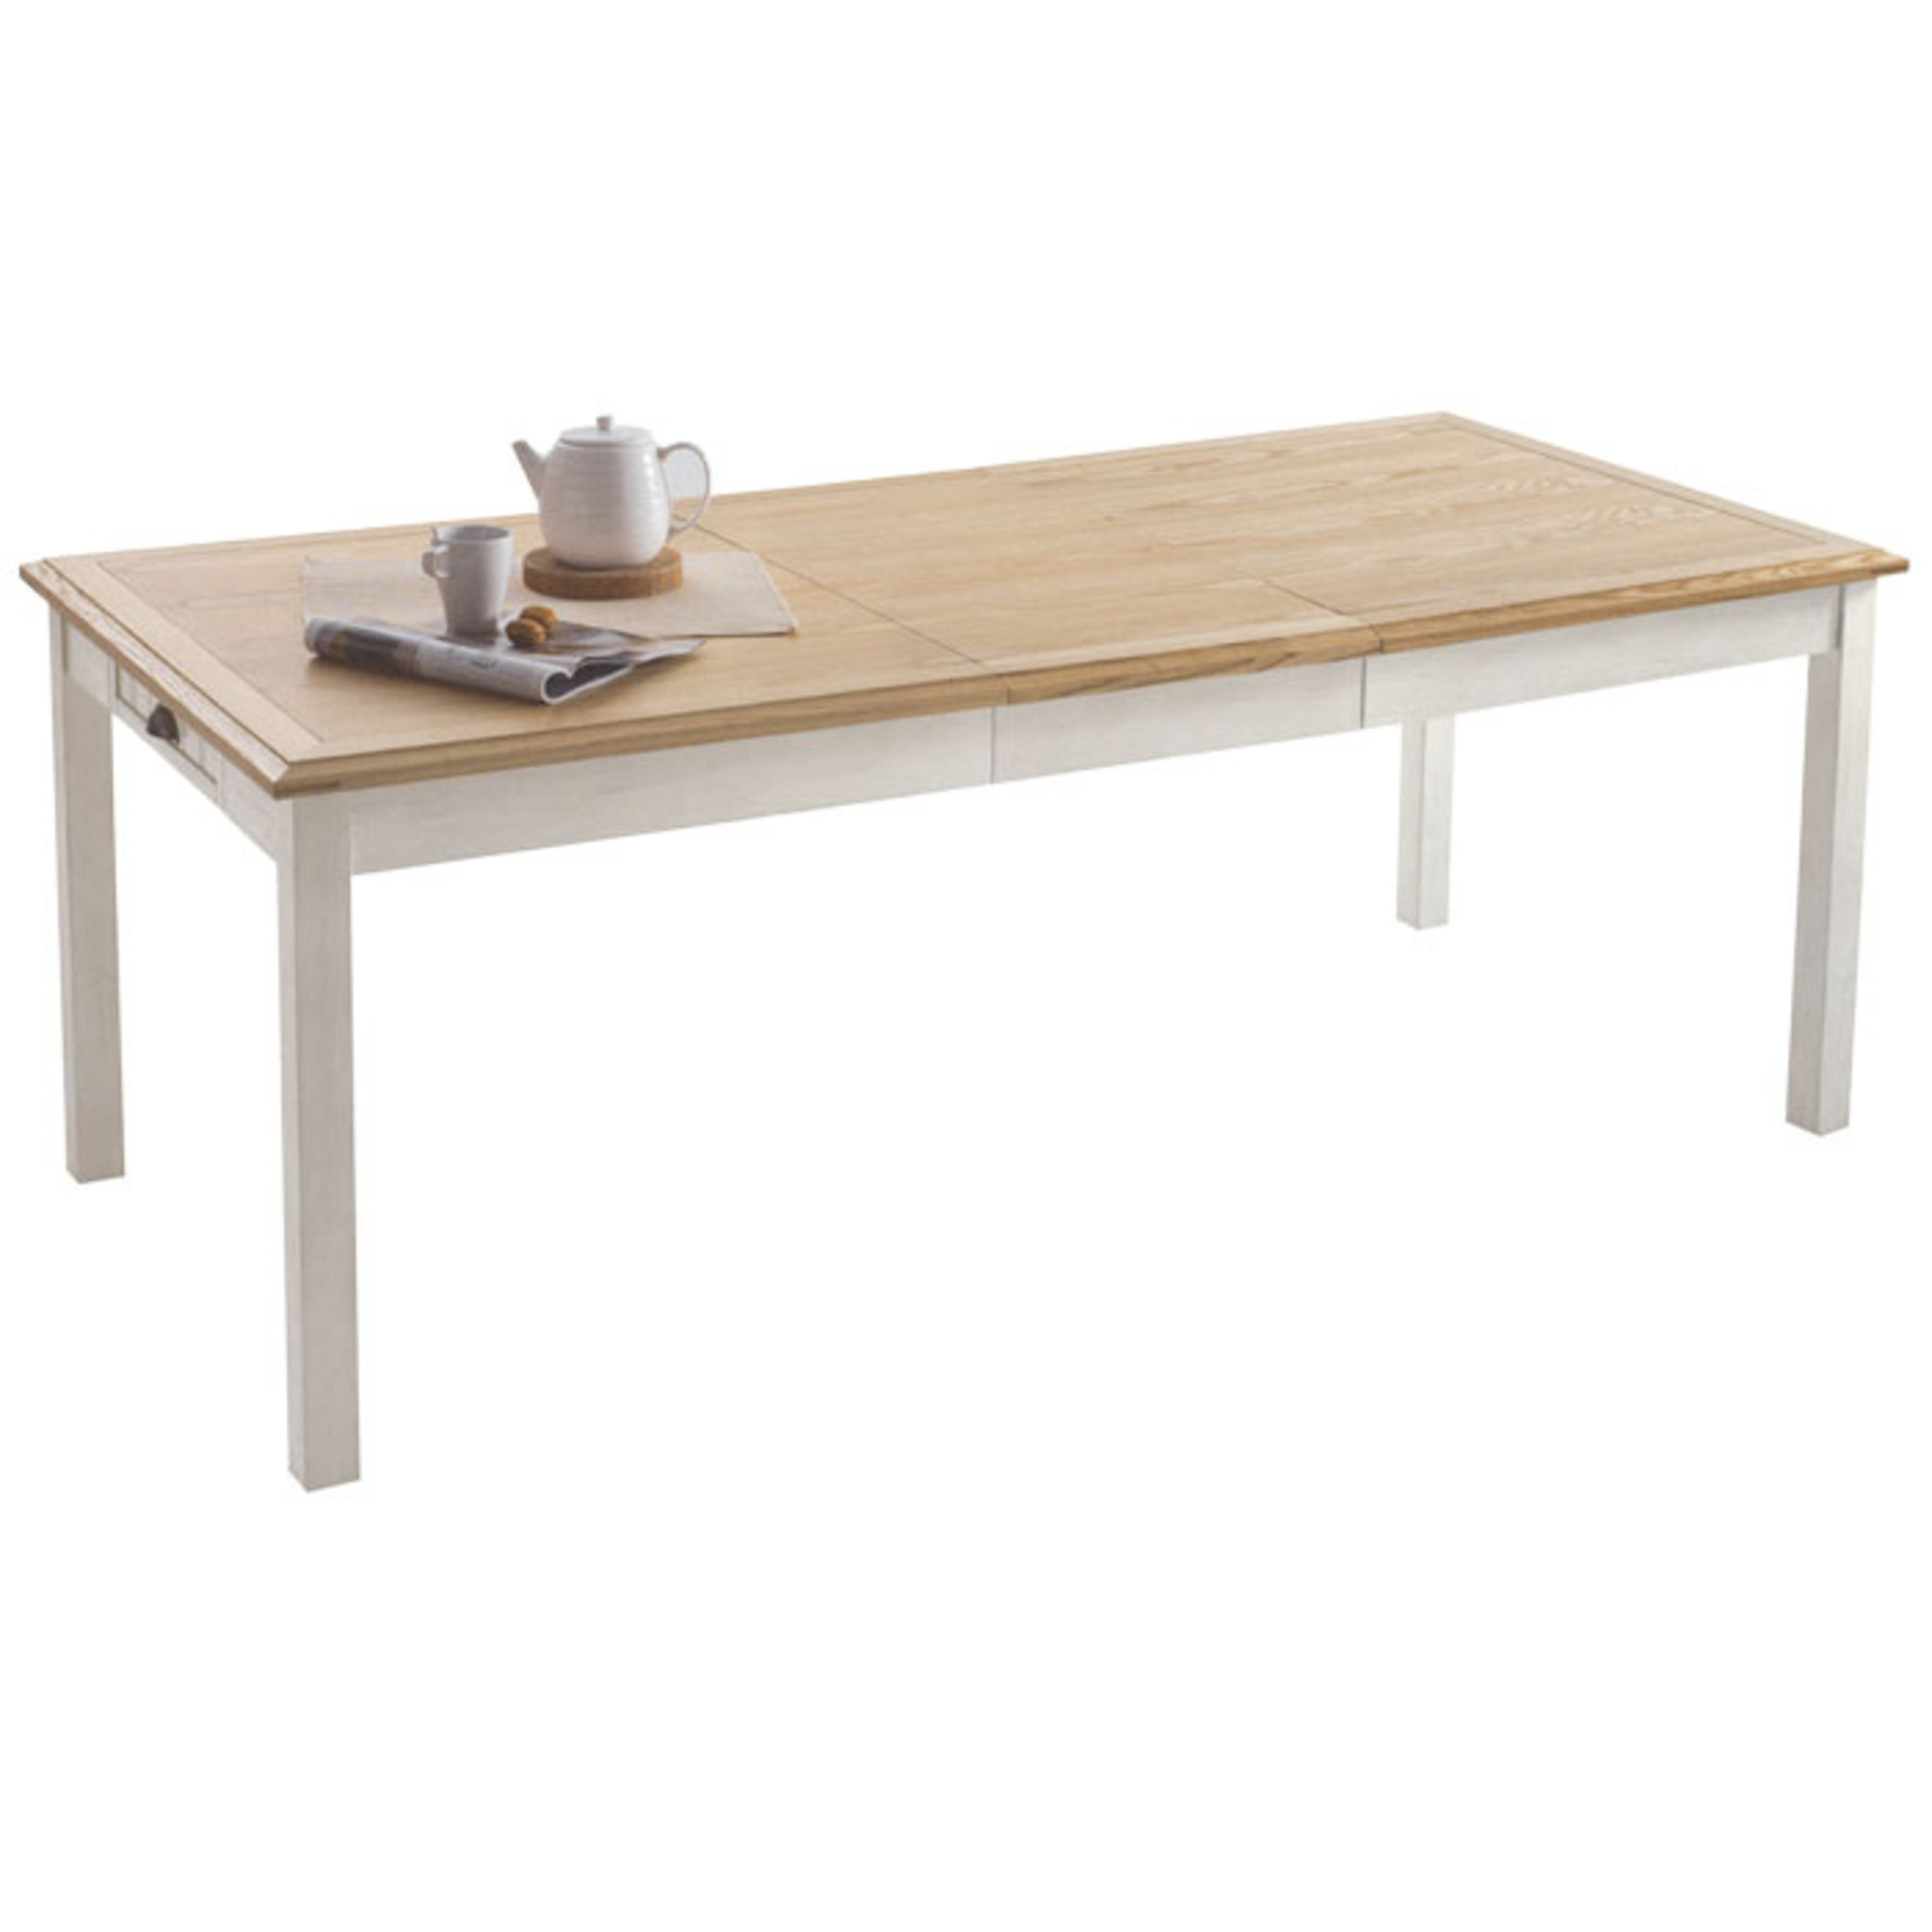 Table rectangulaire allonge berling blanc patin - Table blanche en bois ...